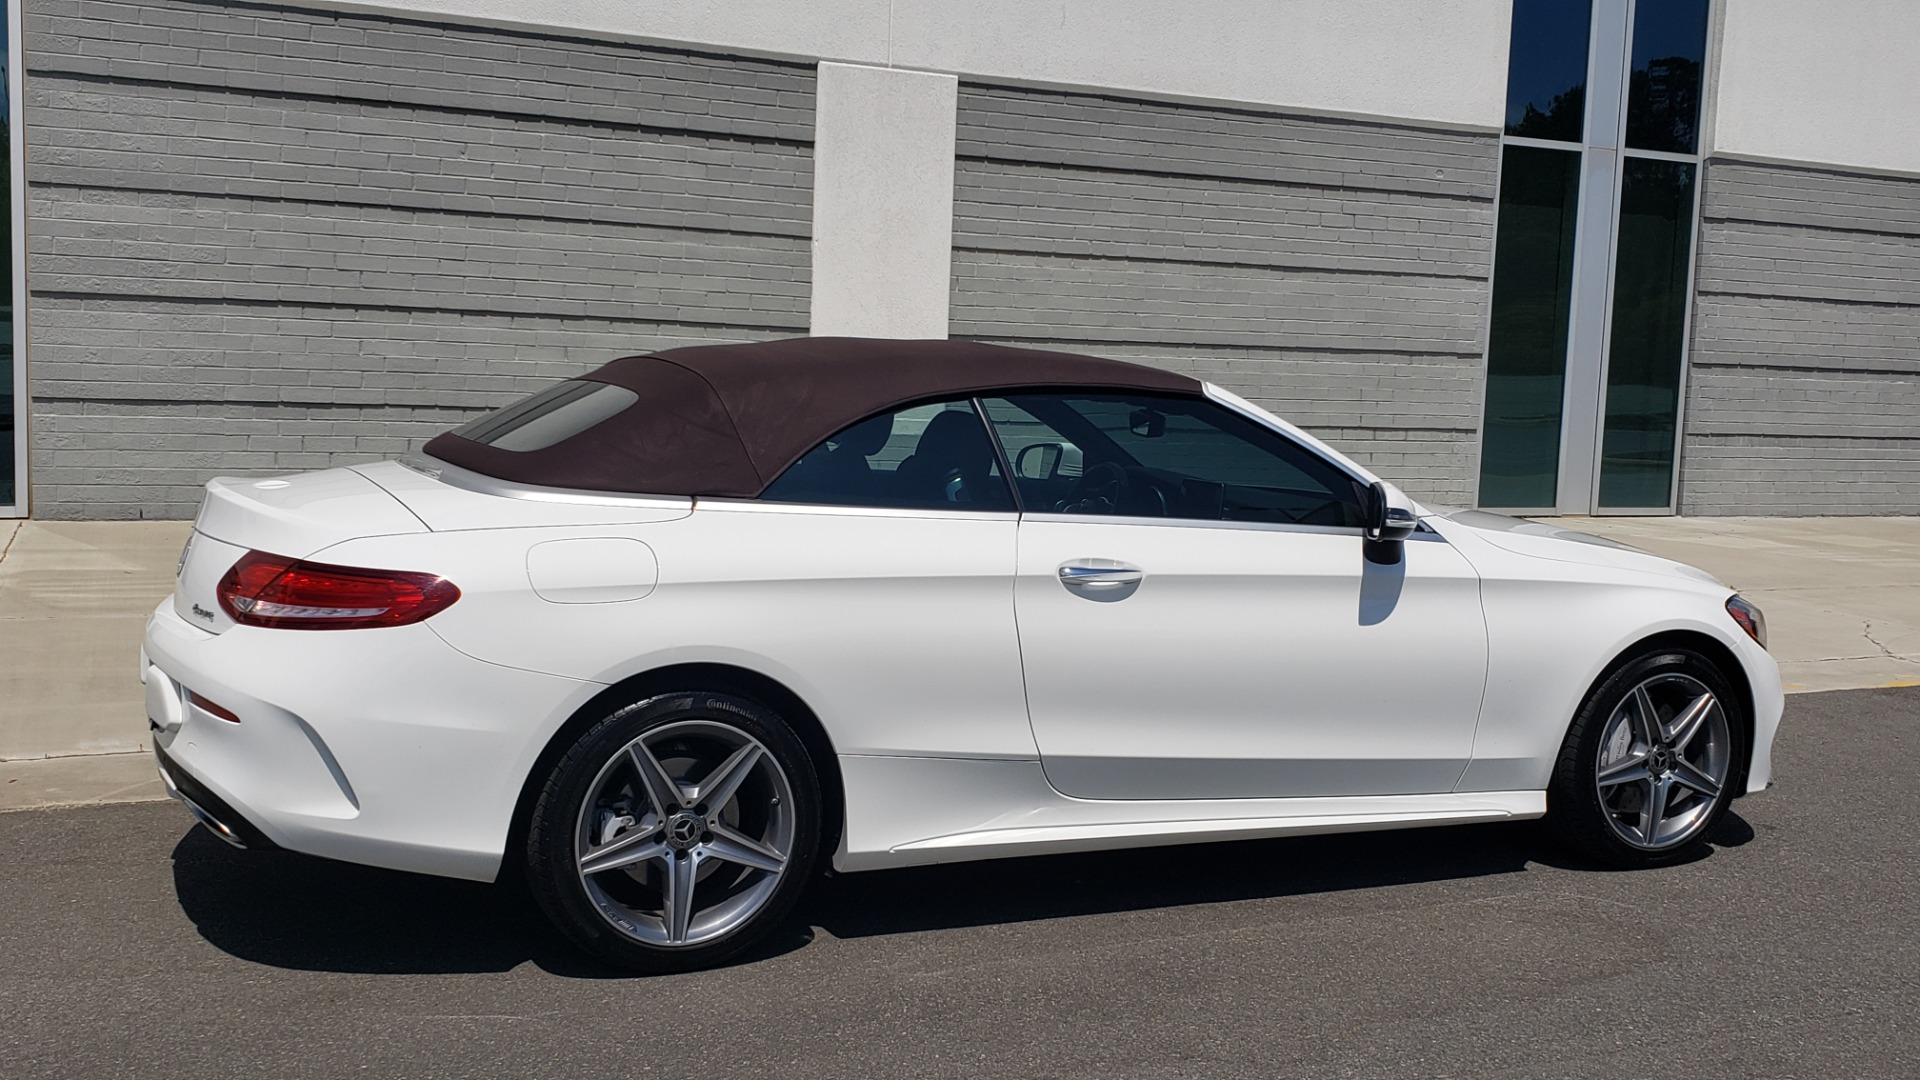 Used 2018 Mercedes-Benz C-CLASS C 300 CABRIOLET PREMIUM / AWD / BURMESTER SND / APPLE / REARVIEW for sale $44,995 at Formula Imports in Charlotte NC 28227 17